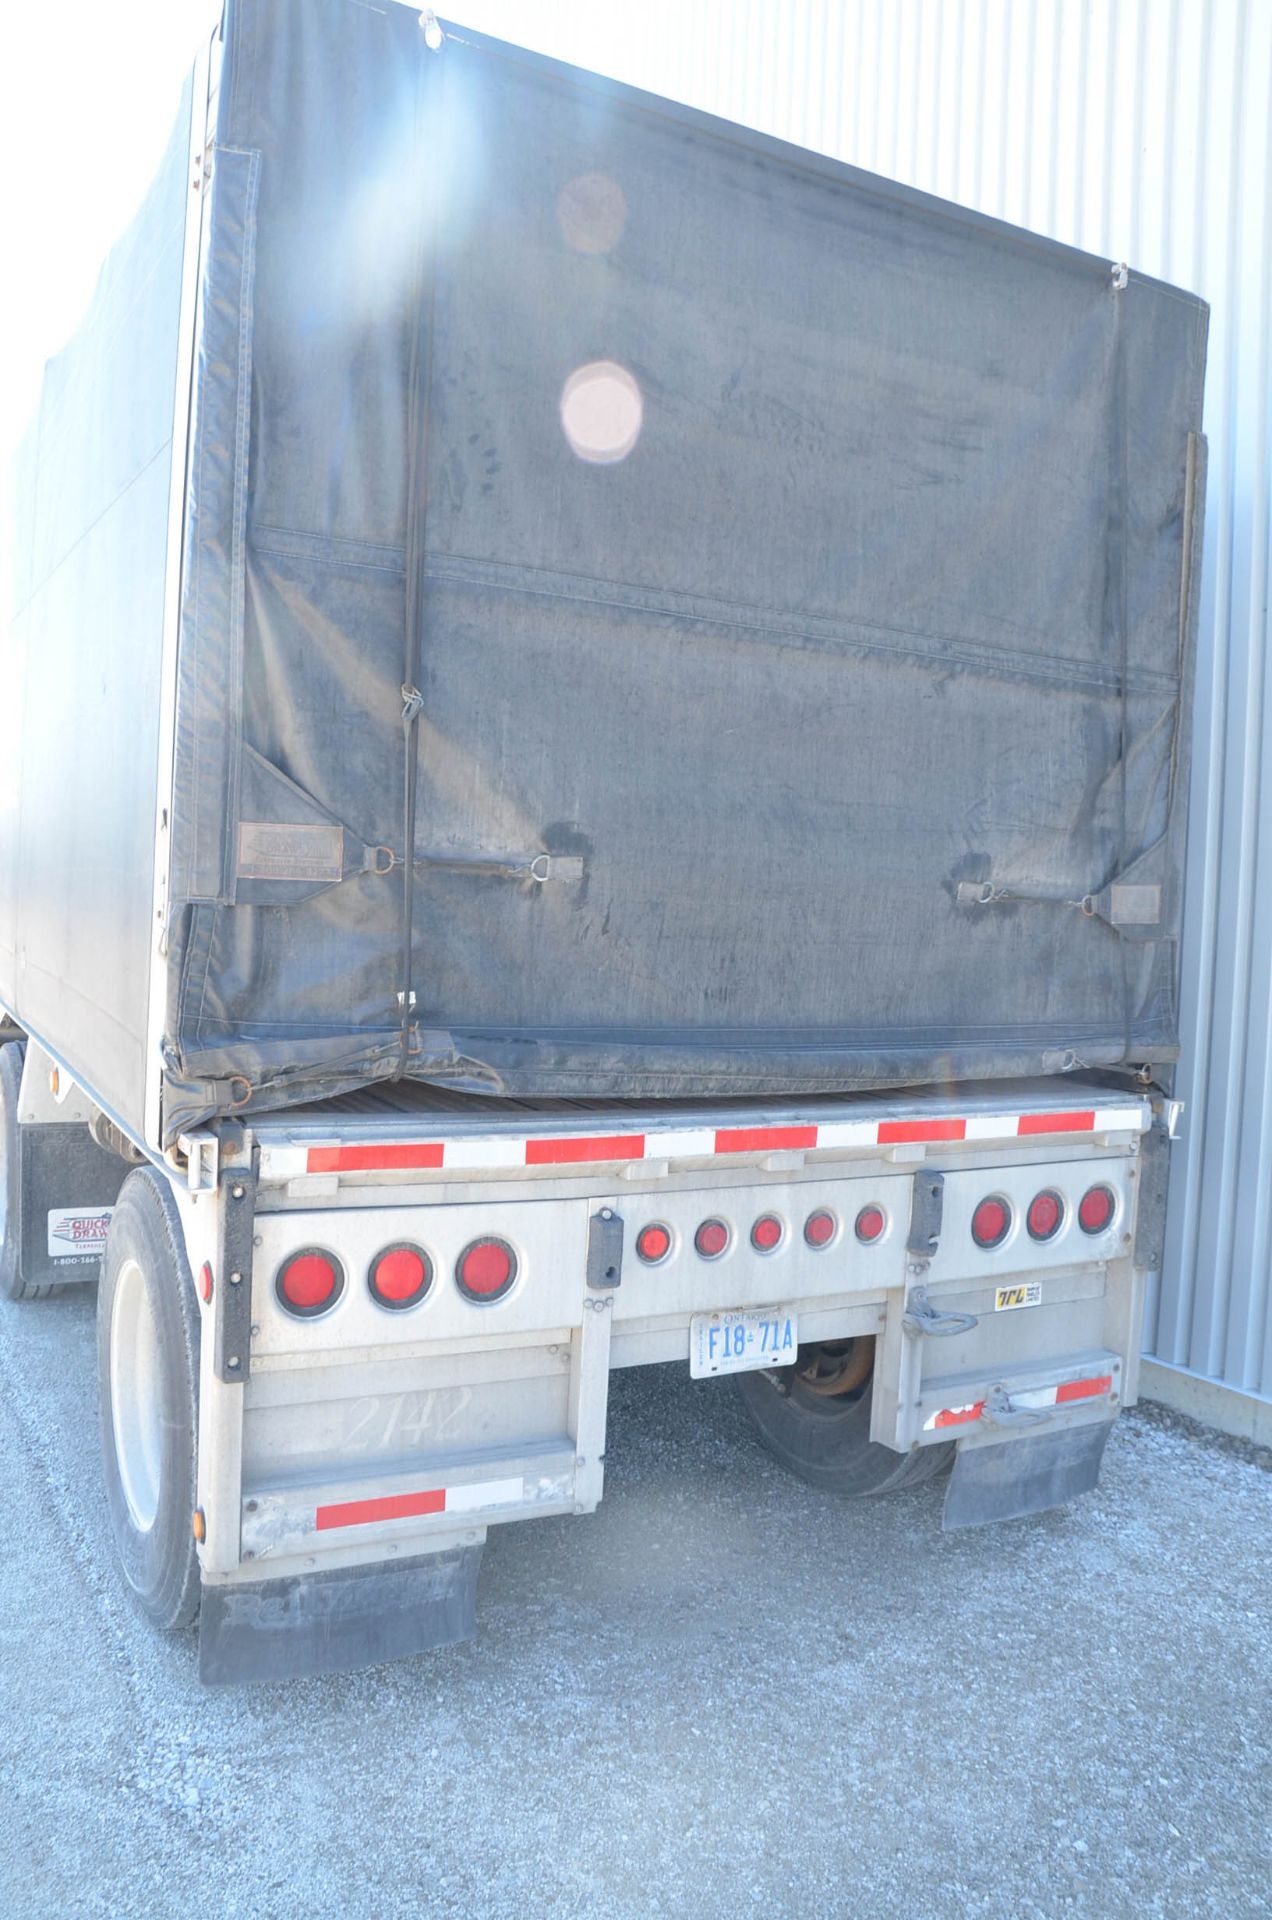 REITNOUER (1999) TANDEM AXLE ALUMINUM FLAT-DECK TRAILER, ROLL TITE QUICK DRAW TARP SYSTEM, VIN: - Image 7 of 12